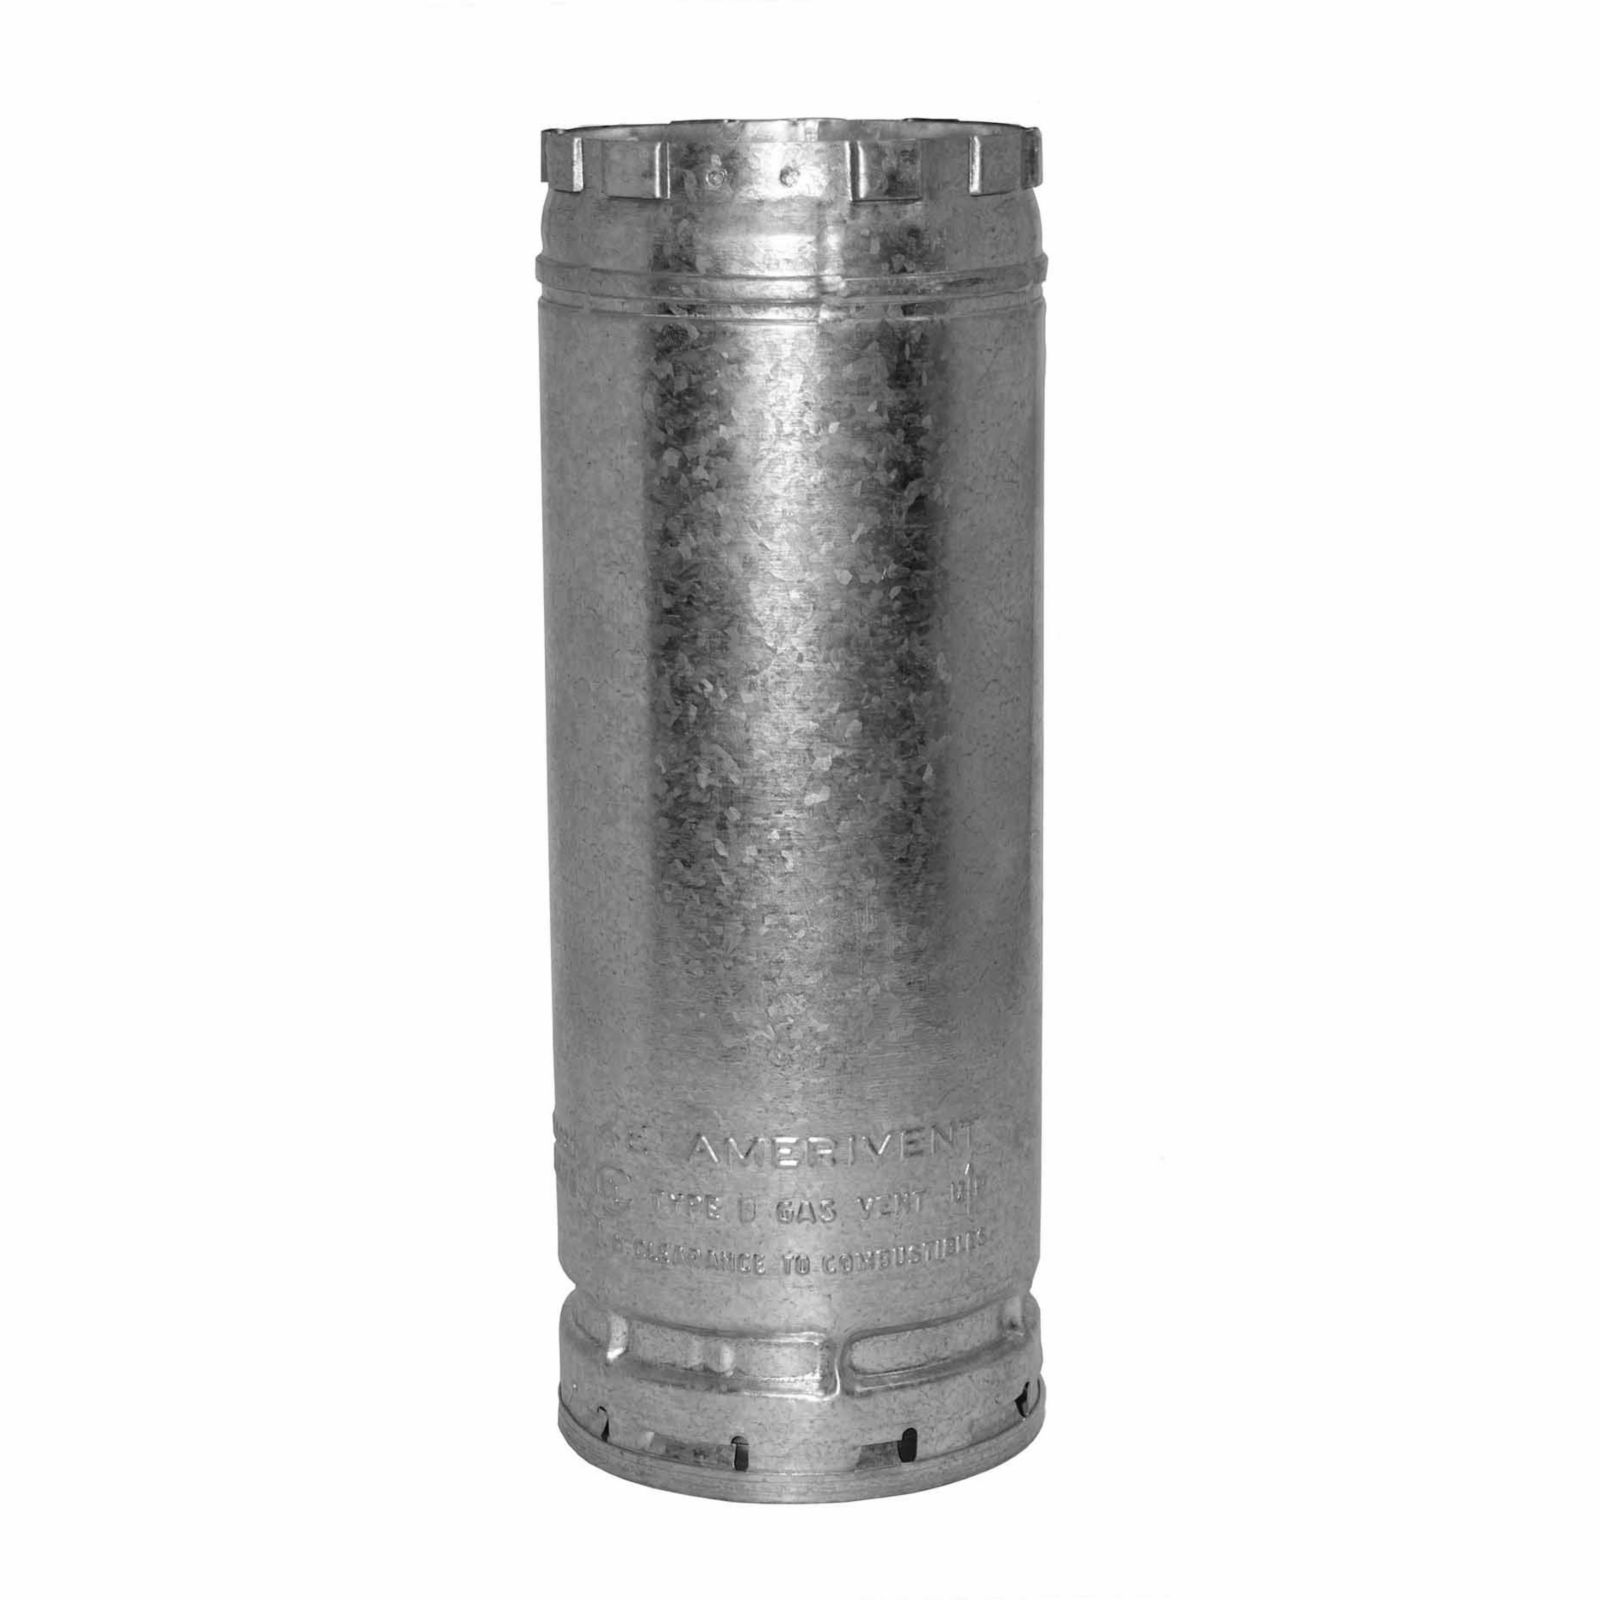 "AmeriVent 3E3 - Pipe Section Type B Gas Vent, 3"" Round X 36"" Length"